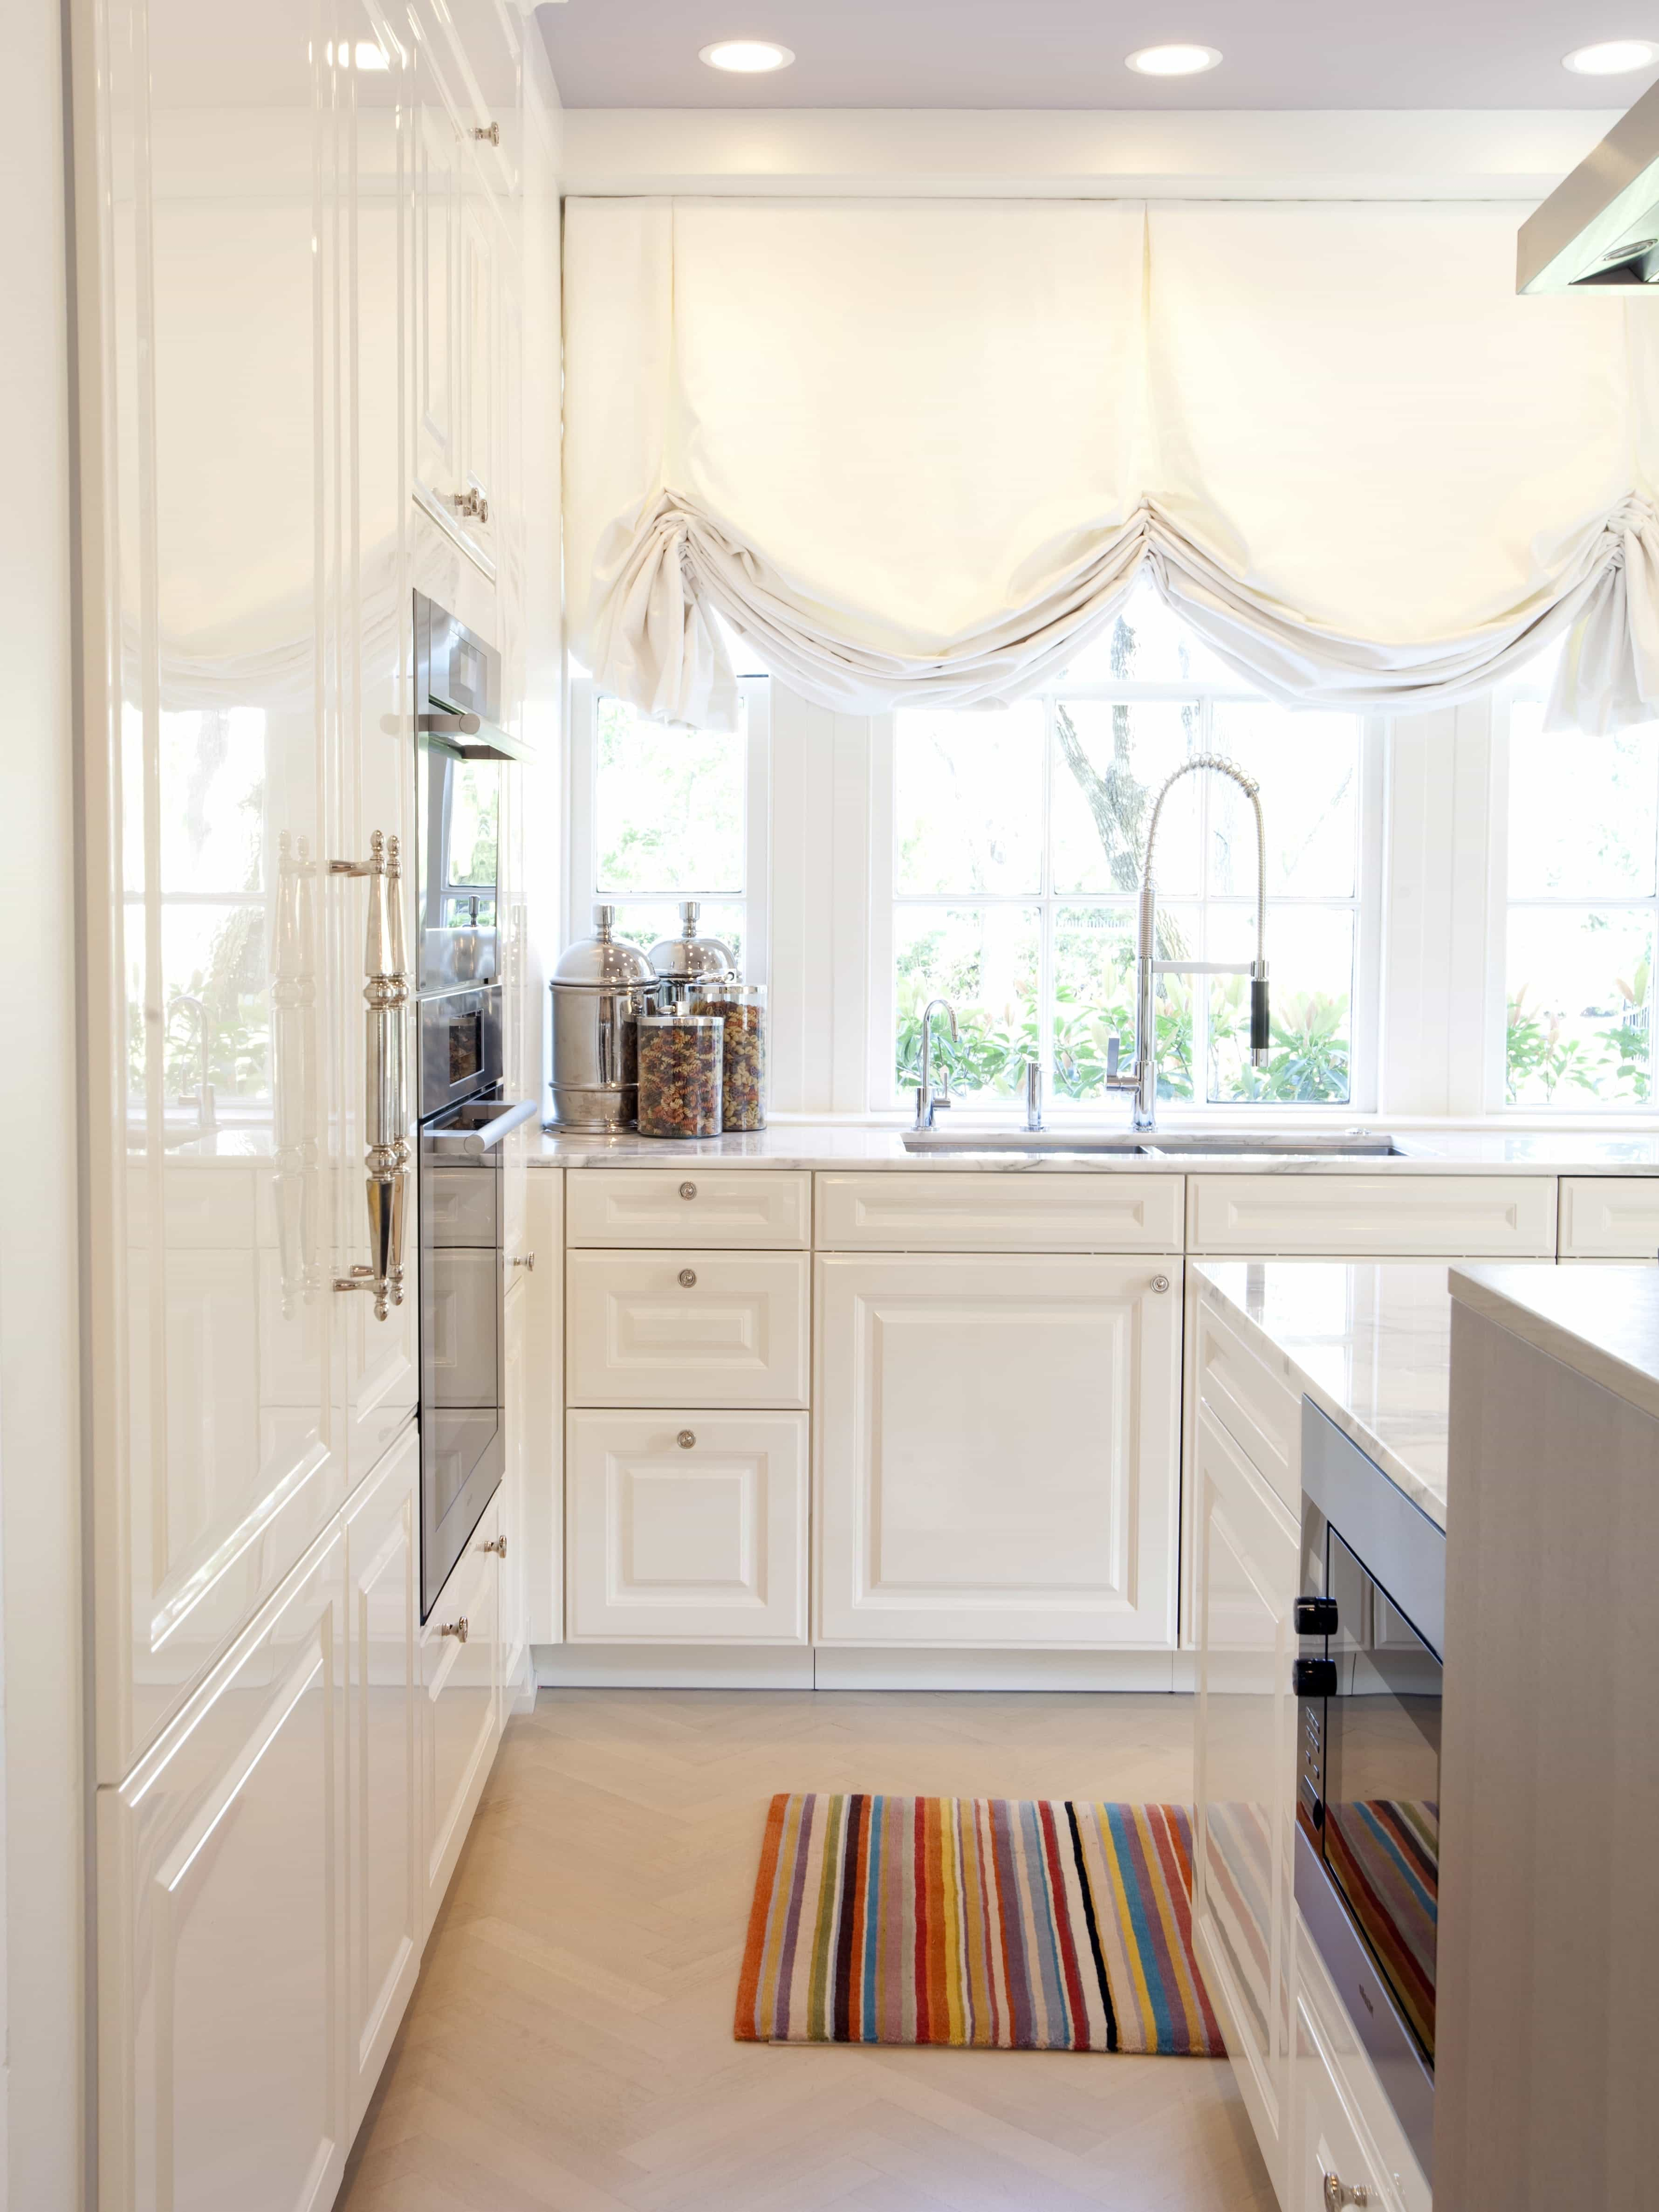 Impressive DIY Kitchen Window Curtains 23637  Kitchen Ideas